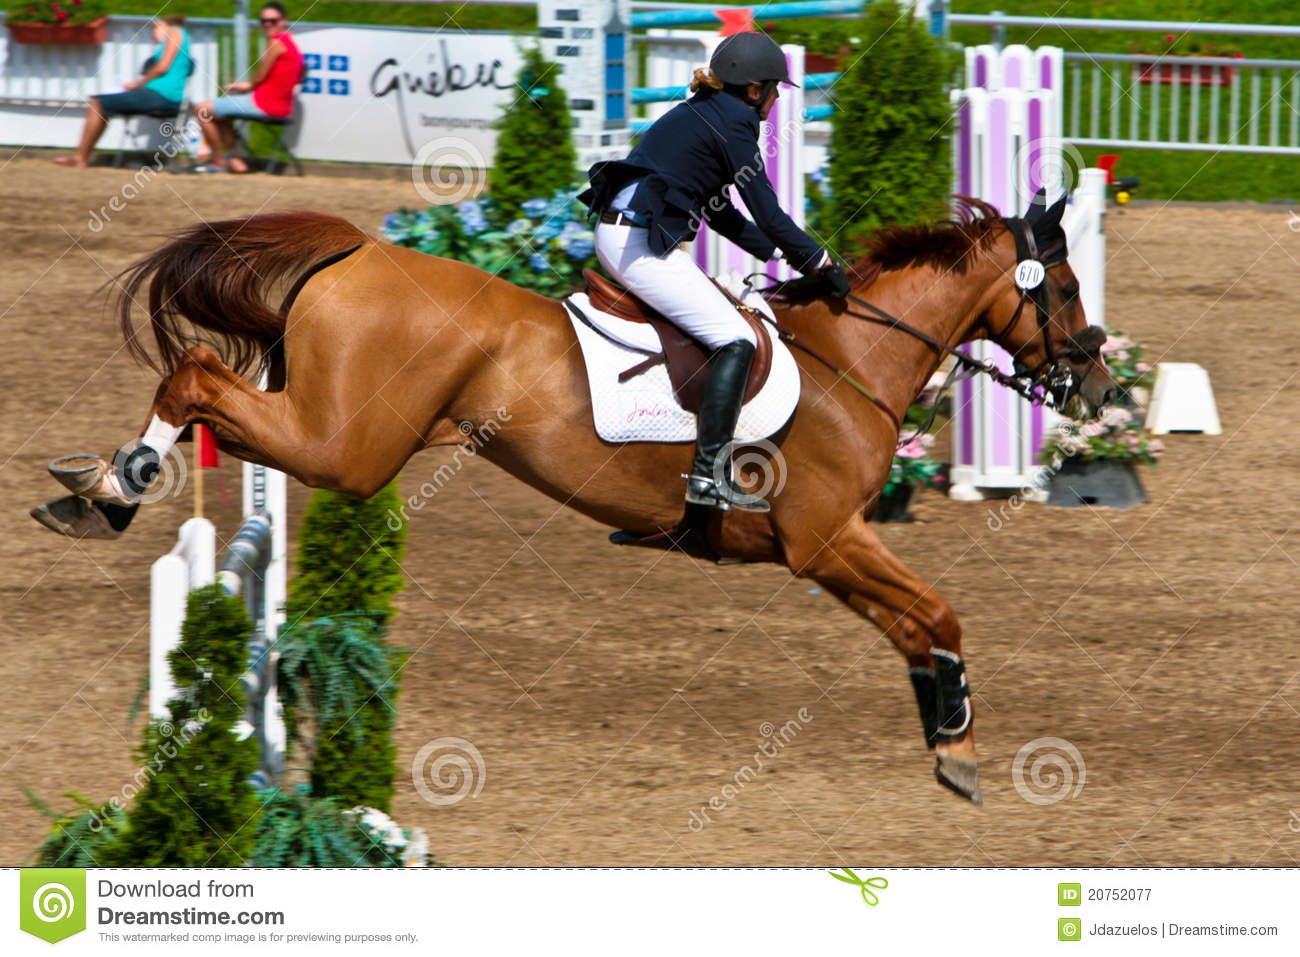 Horse Rider at the Bromont jumping competition